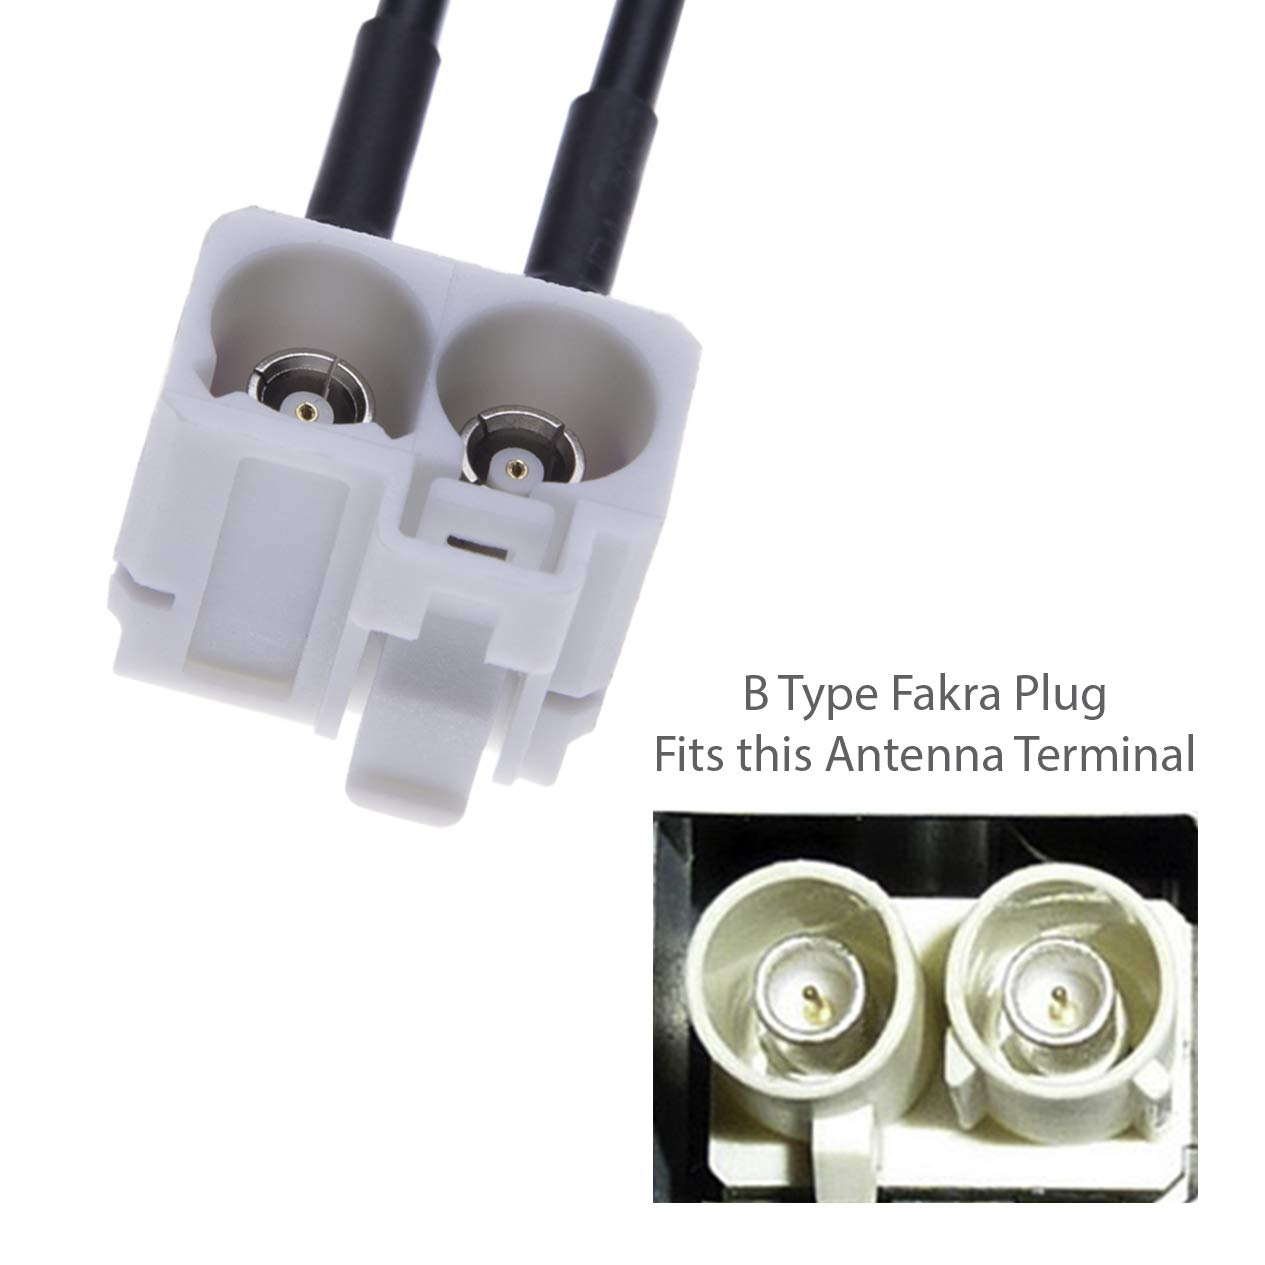 Double Fakra Vehicle Aerial Connector for 3rd Generation Radios in RCD MFD Radio RNS Dual Fakra Car Antenna Adapter by Keple Twin Fakra Adaptor RNS310